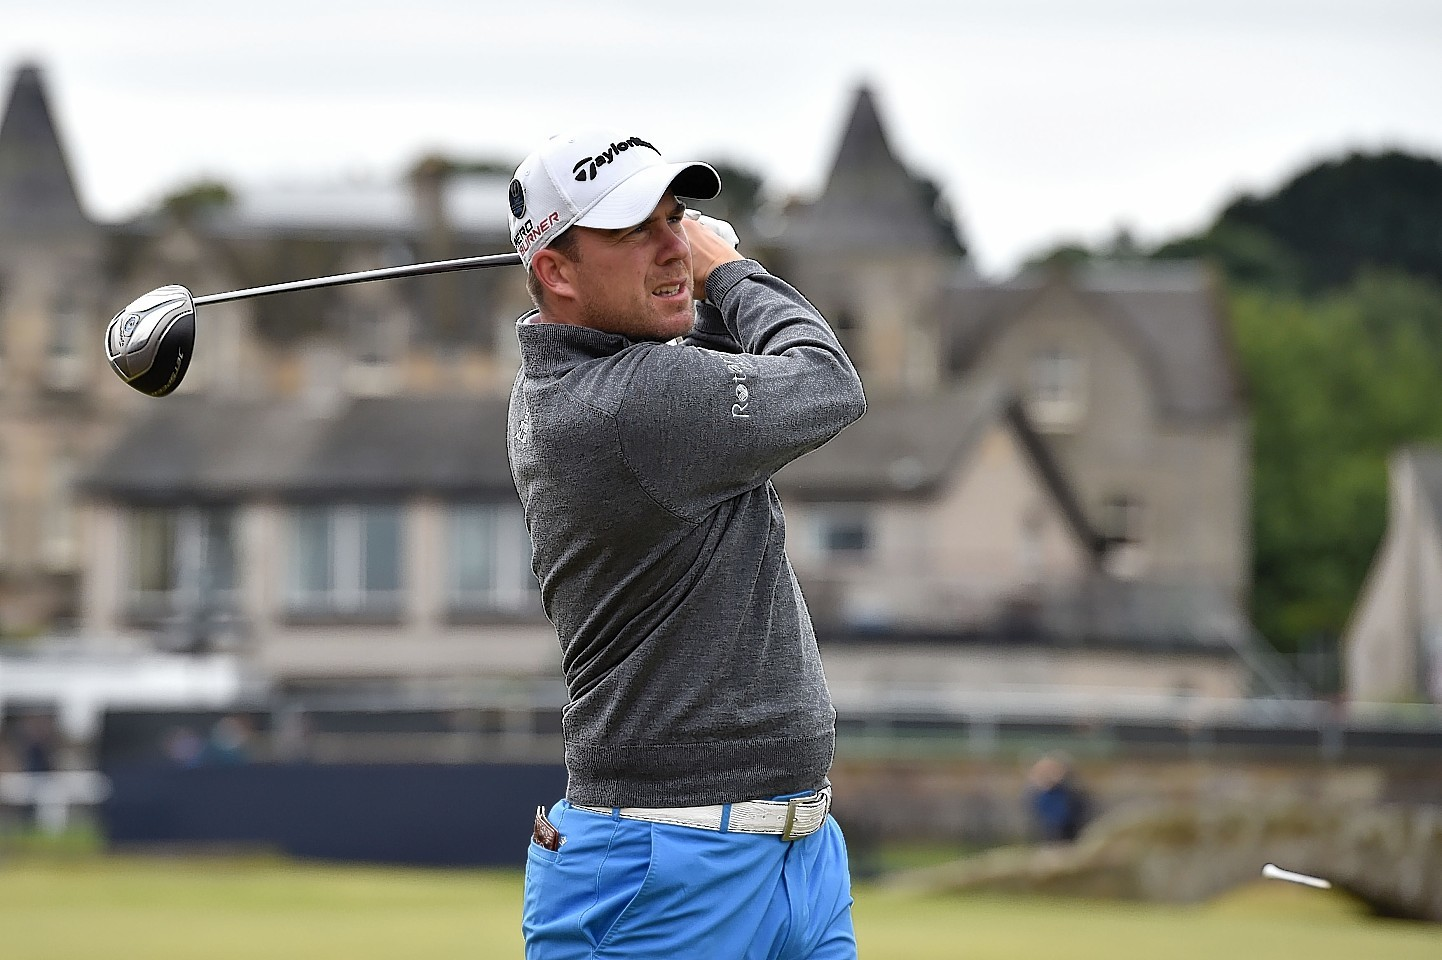 Richie Ramsay tees off at the Open Championship 2015 at St Andrews. Photo by David Davies/PA Wire.